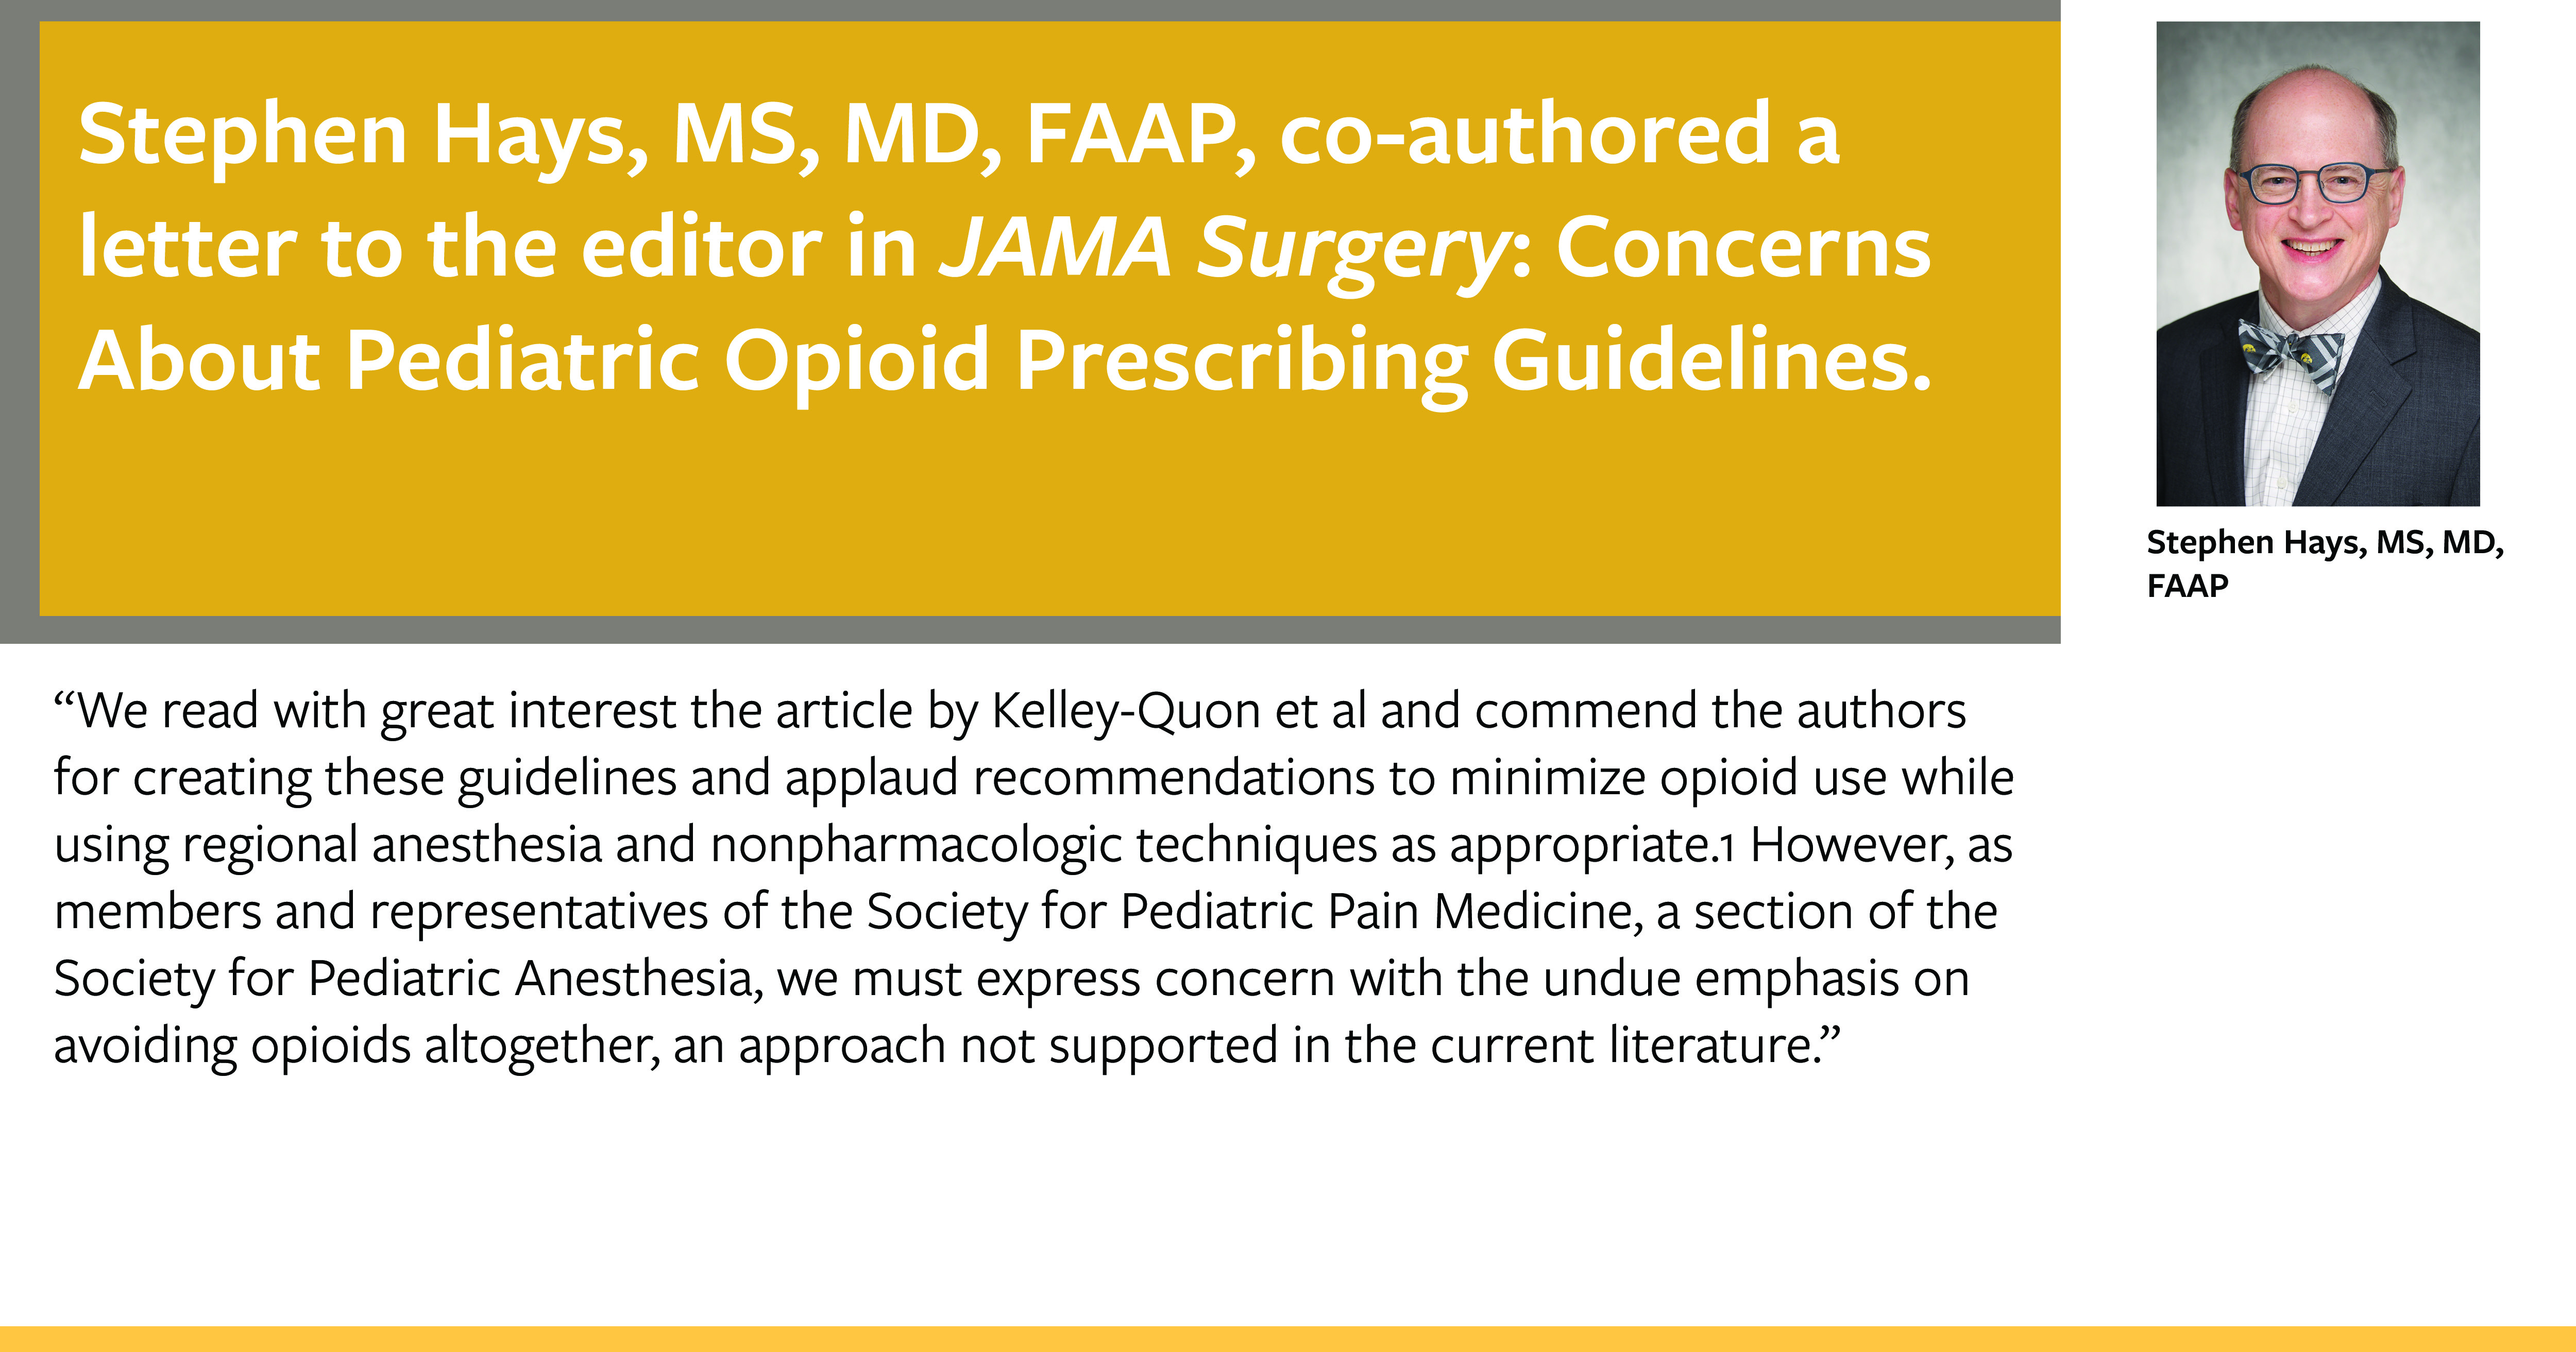 Stephen Hays, MD, FAAP, co-authored editorial expressing concern about recommendations to avoid opioid use for pediatric patients